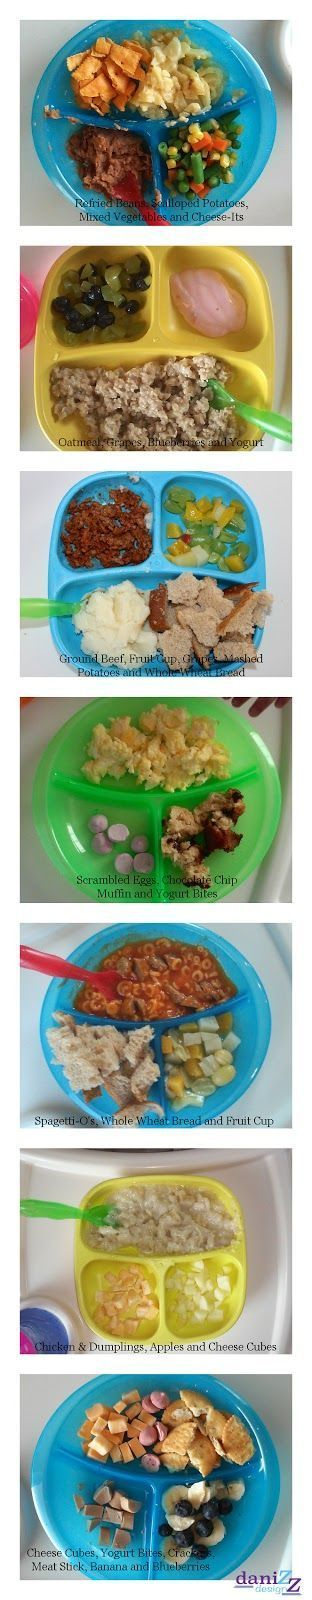 food ideas feeding a one year old a variety of different food ideas